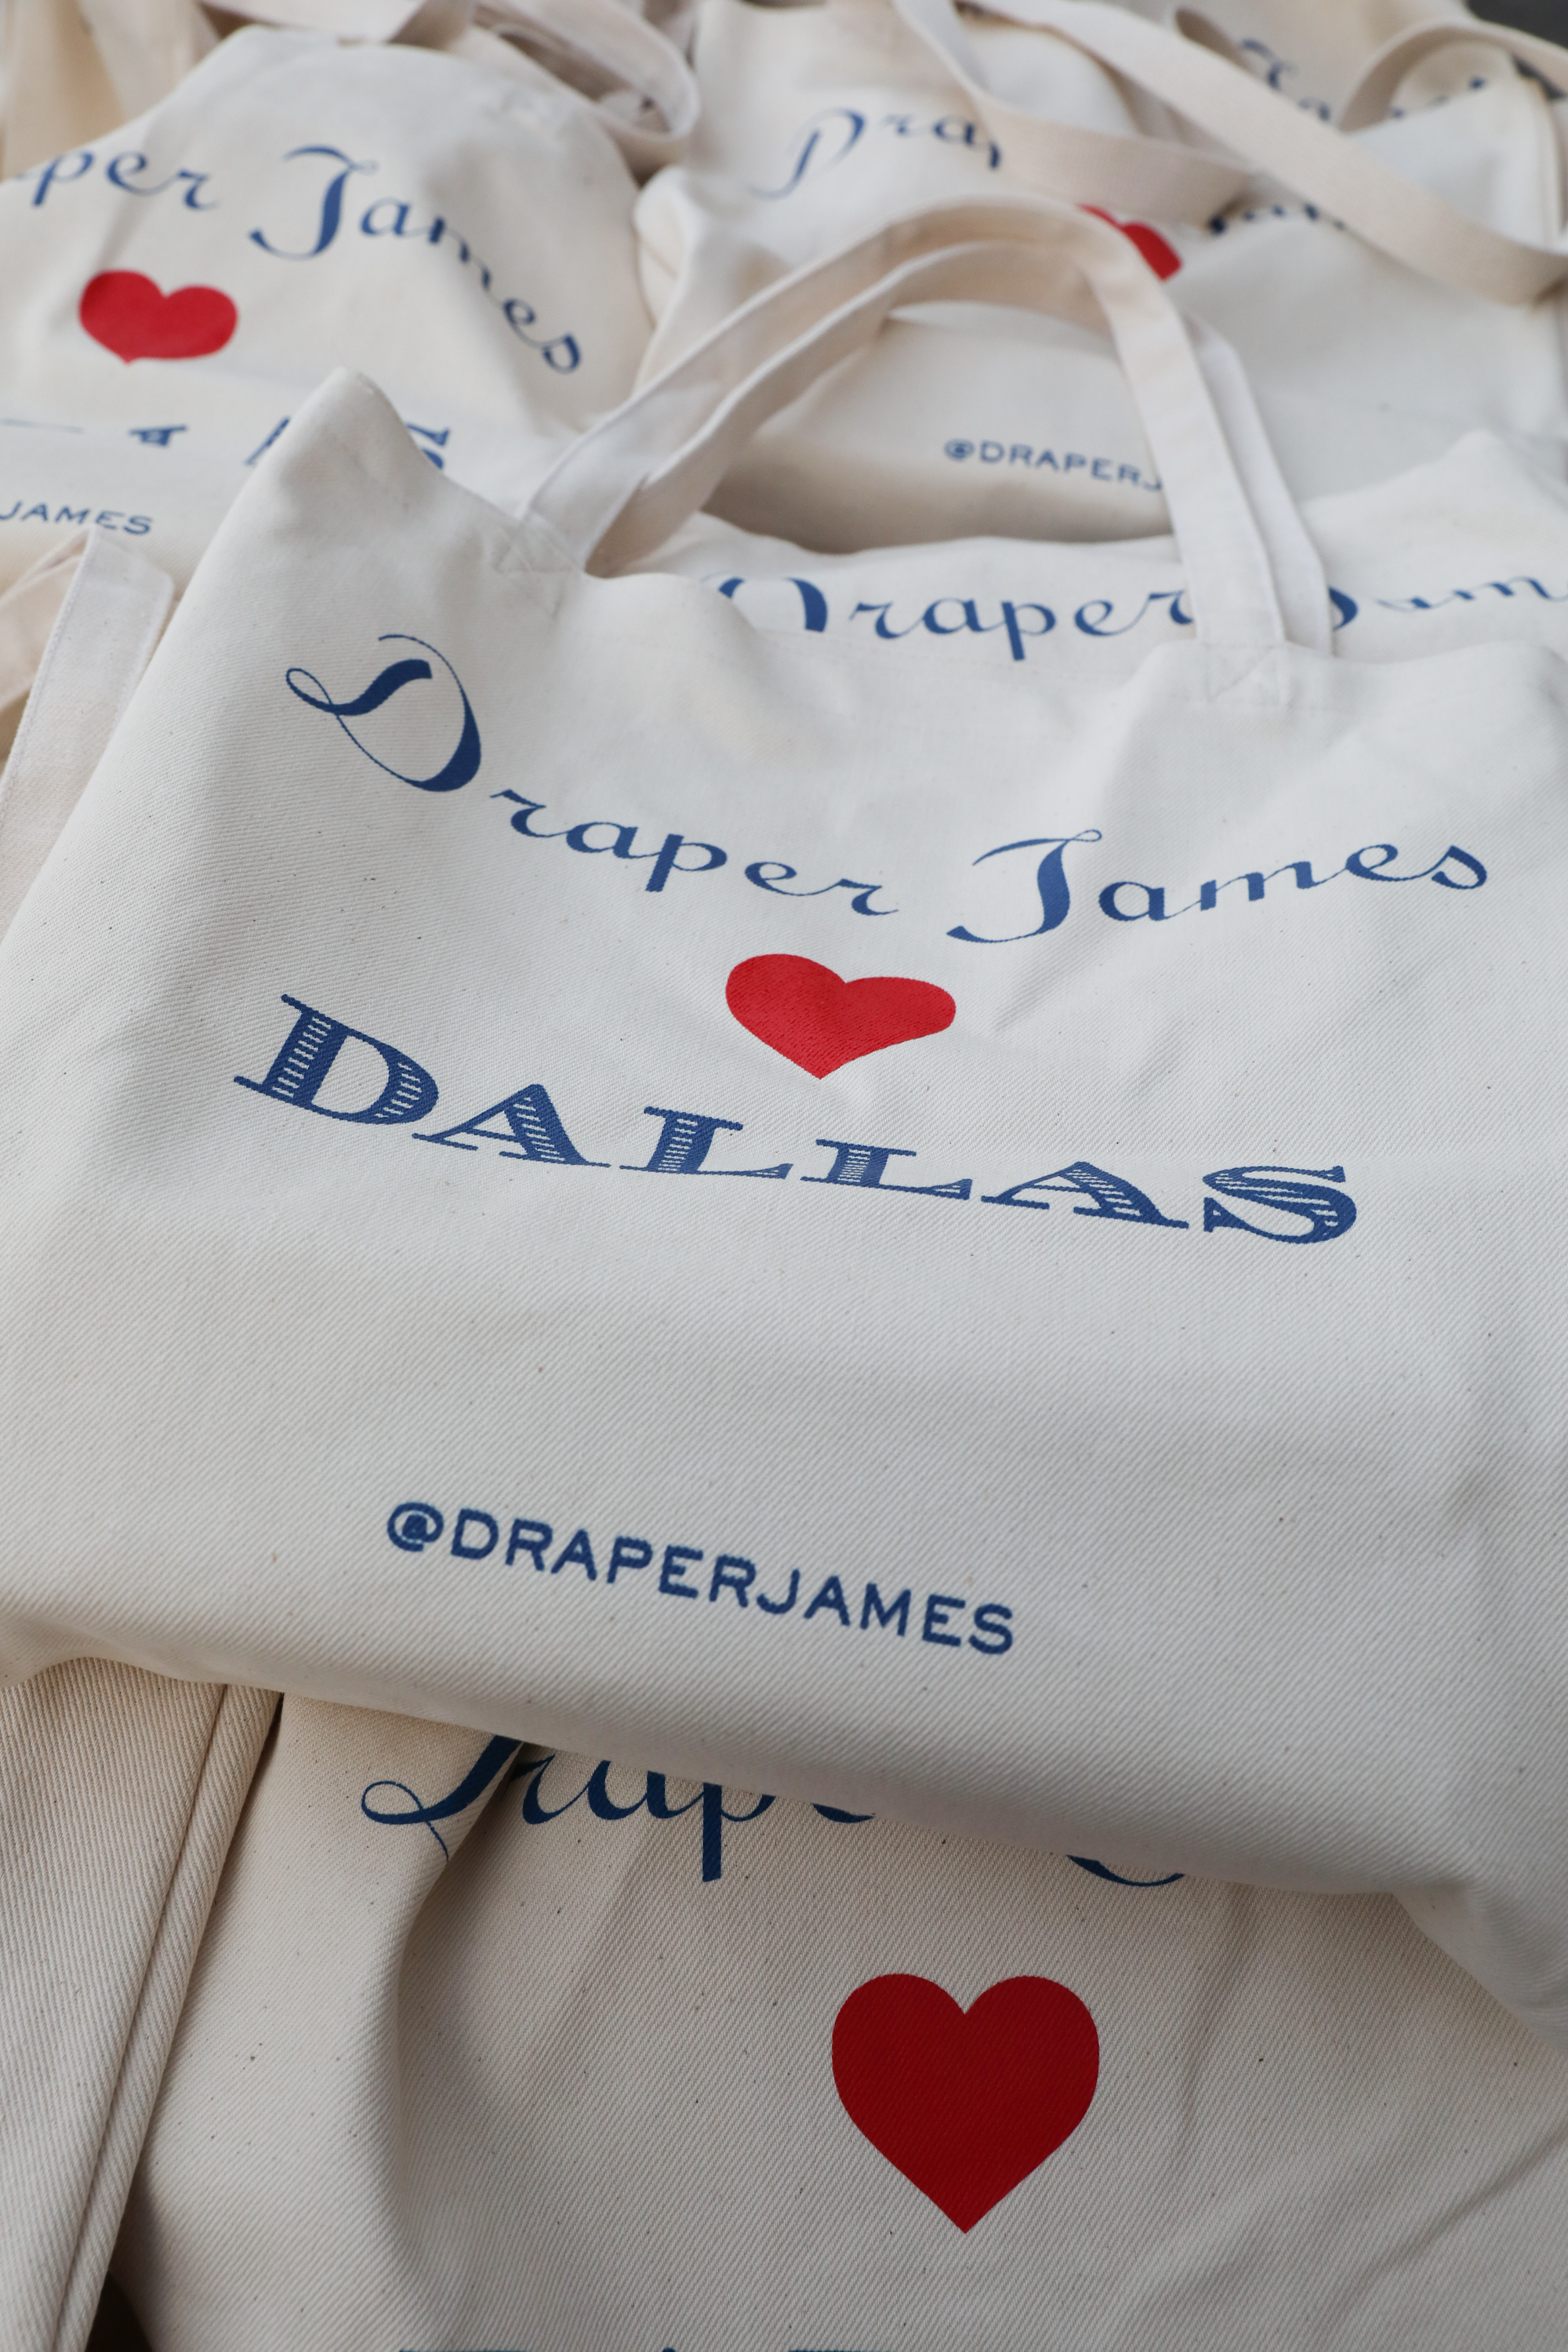 Guests were gifted with a specialty Draper James tote filled with goodies.